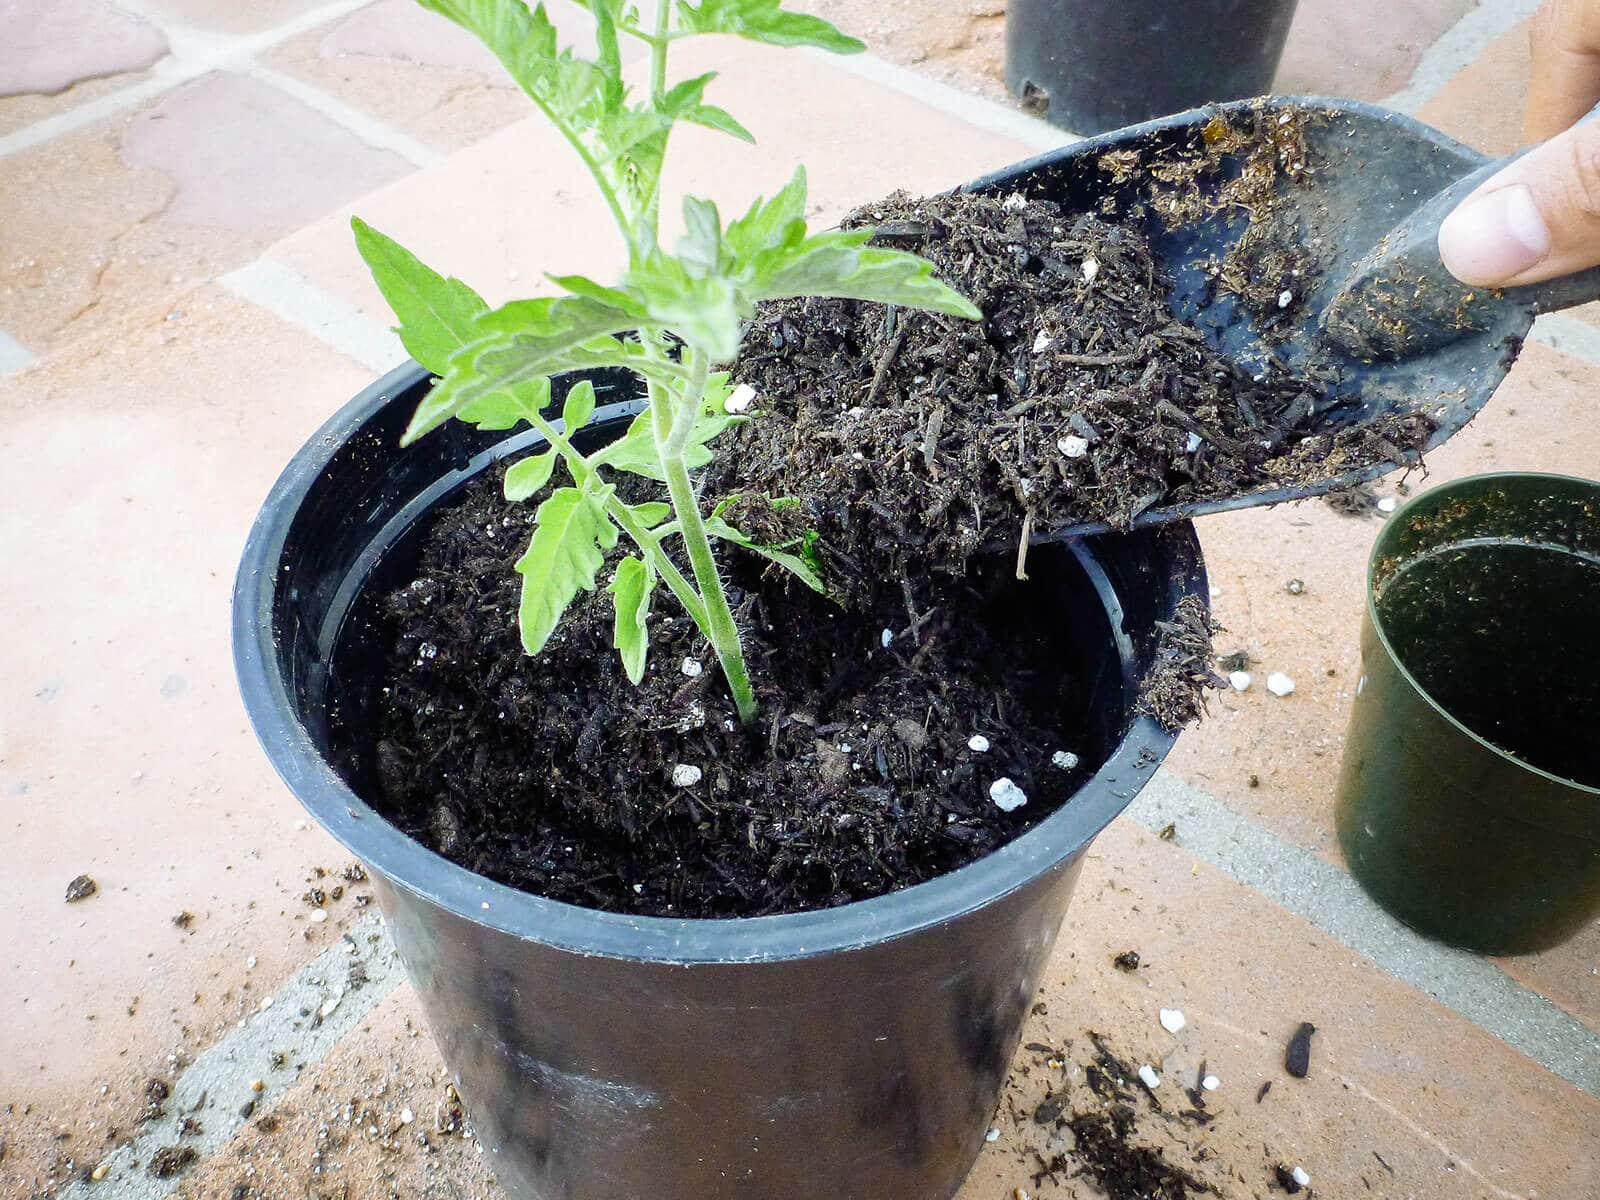 Fill the pot with high-quality potting soil